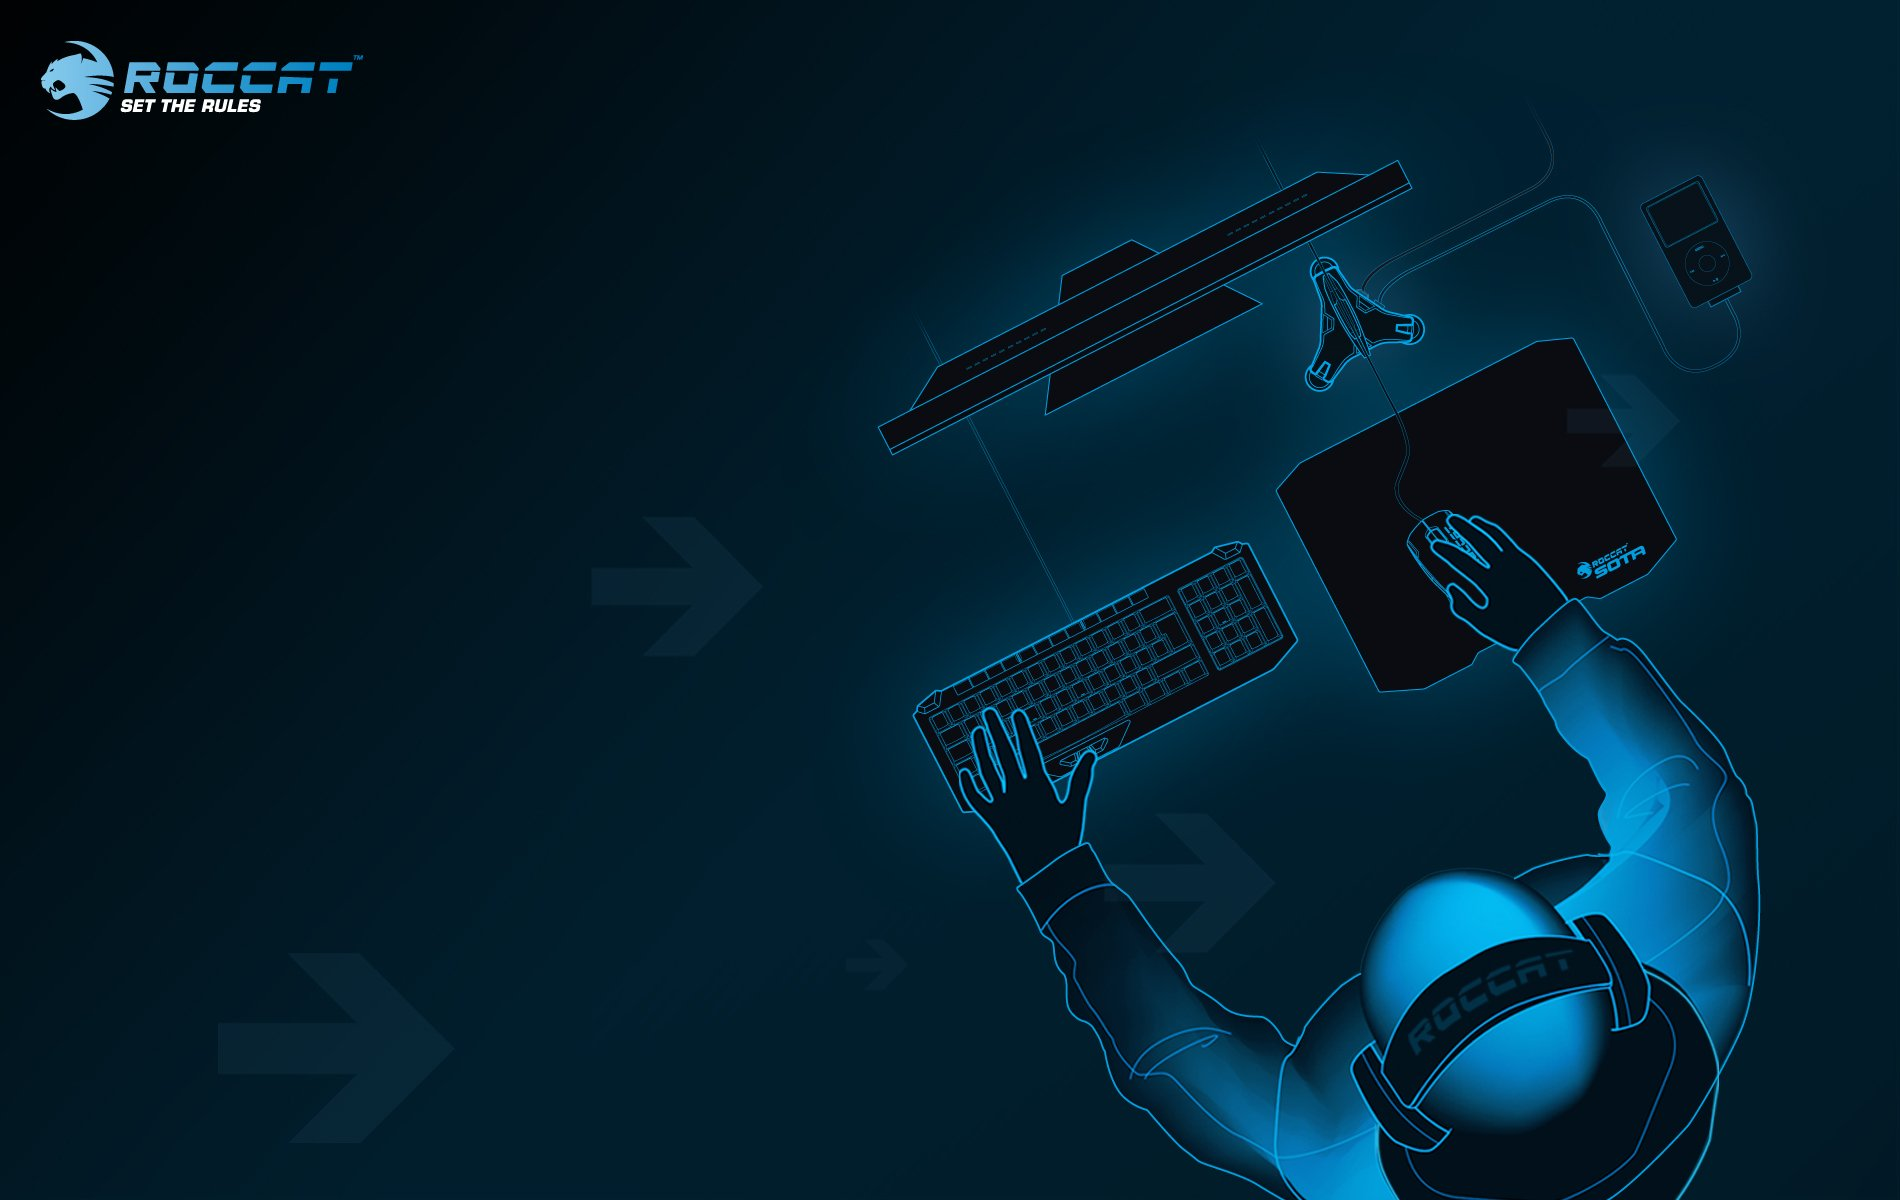 ROCCAT GAMING computer keyboard mouse wallpaper 1900x1200